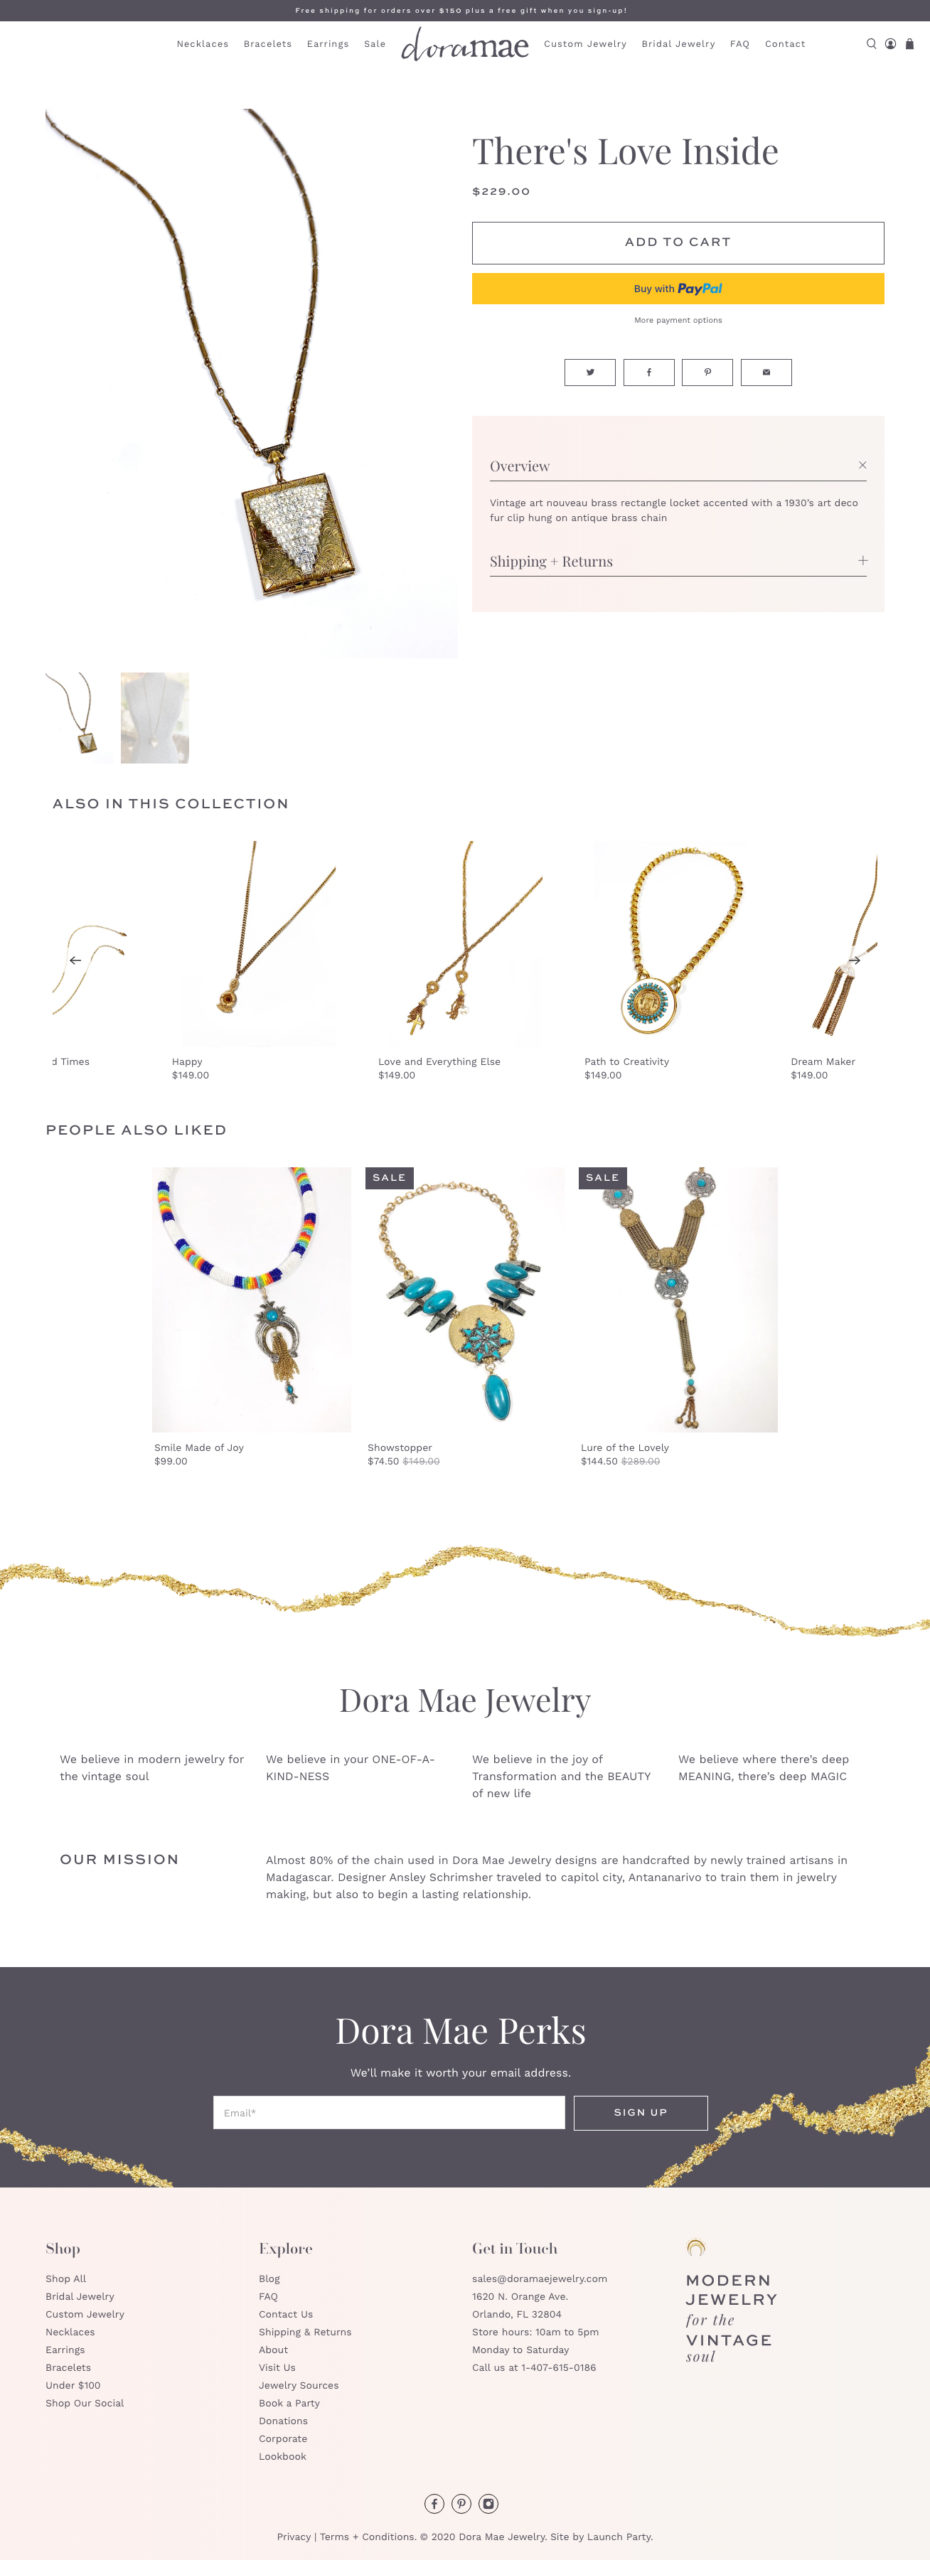 dora mae jewelry new shopify website product page example screenshot